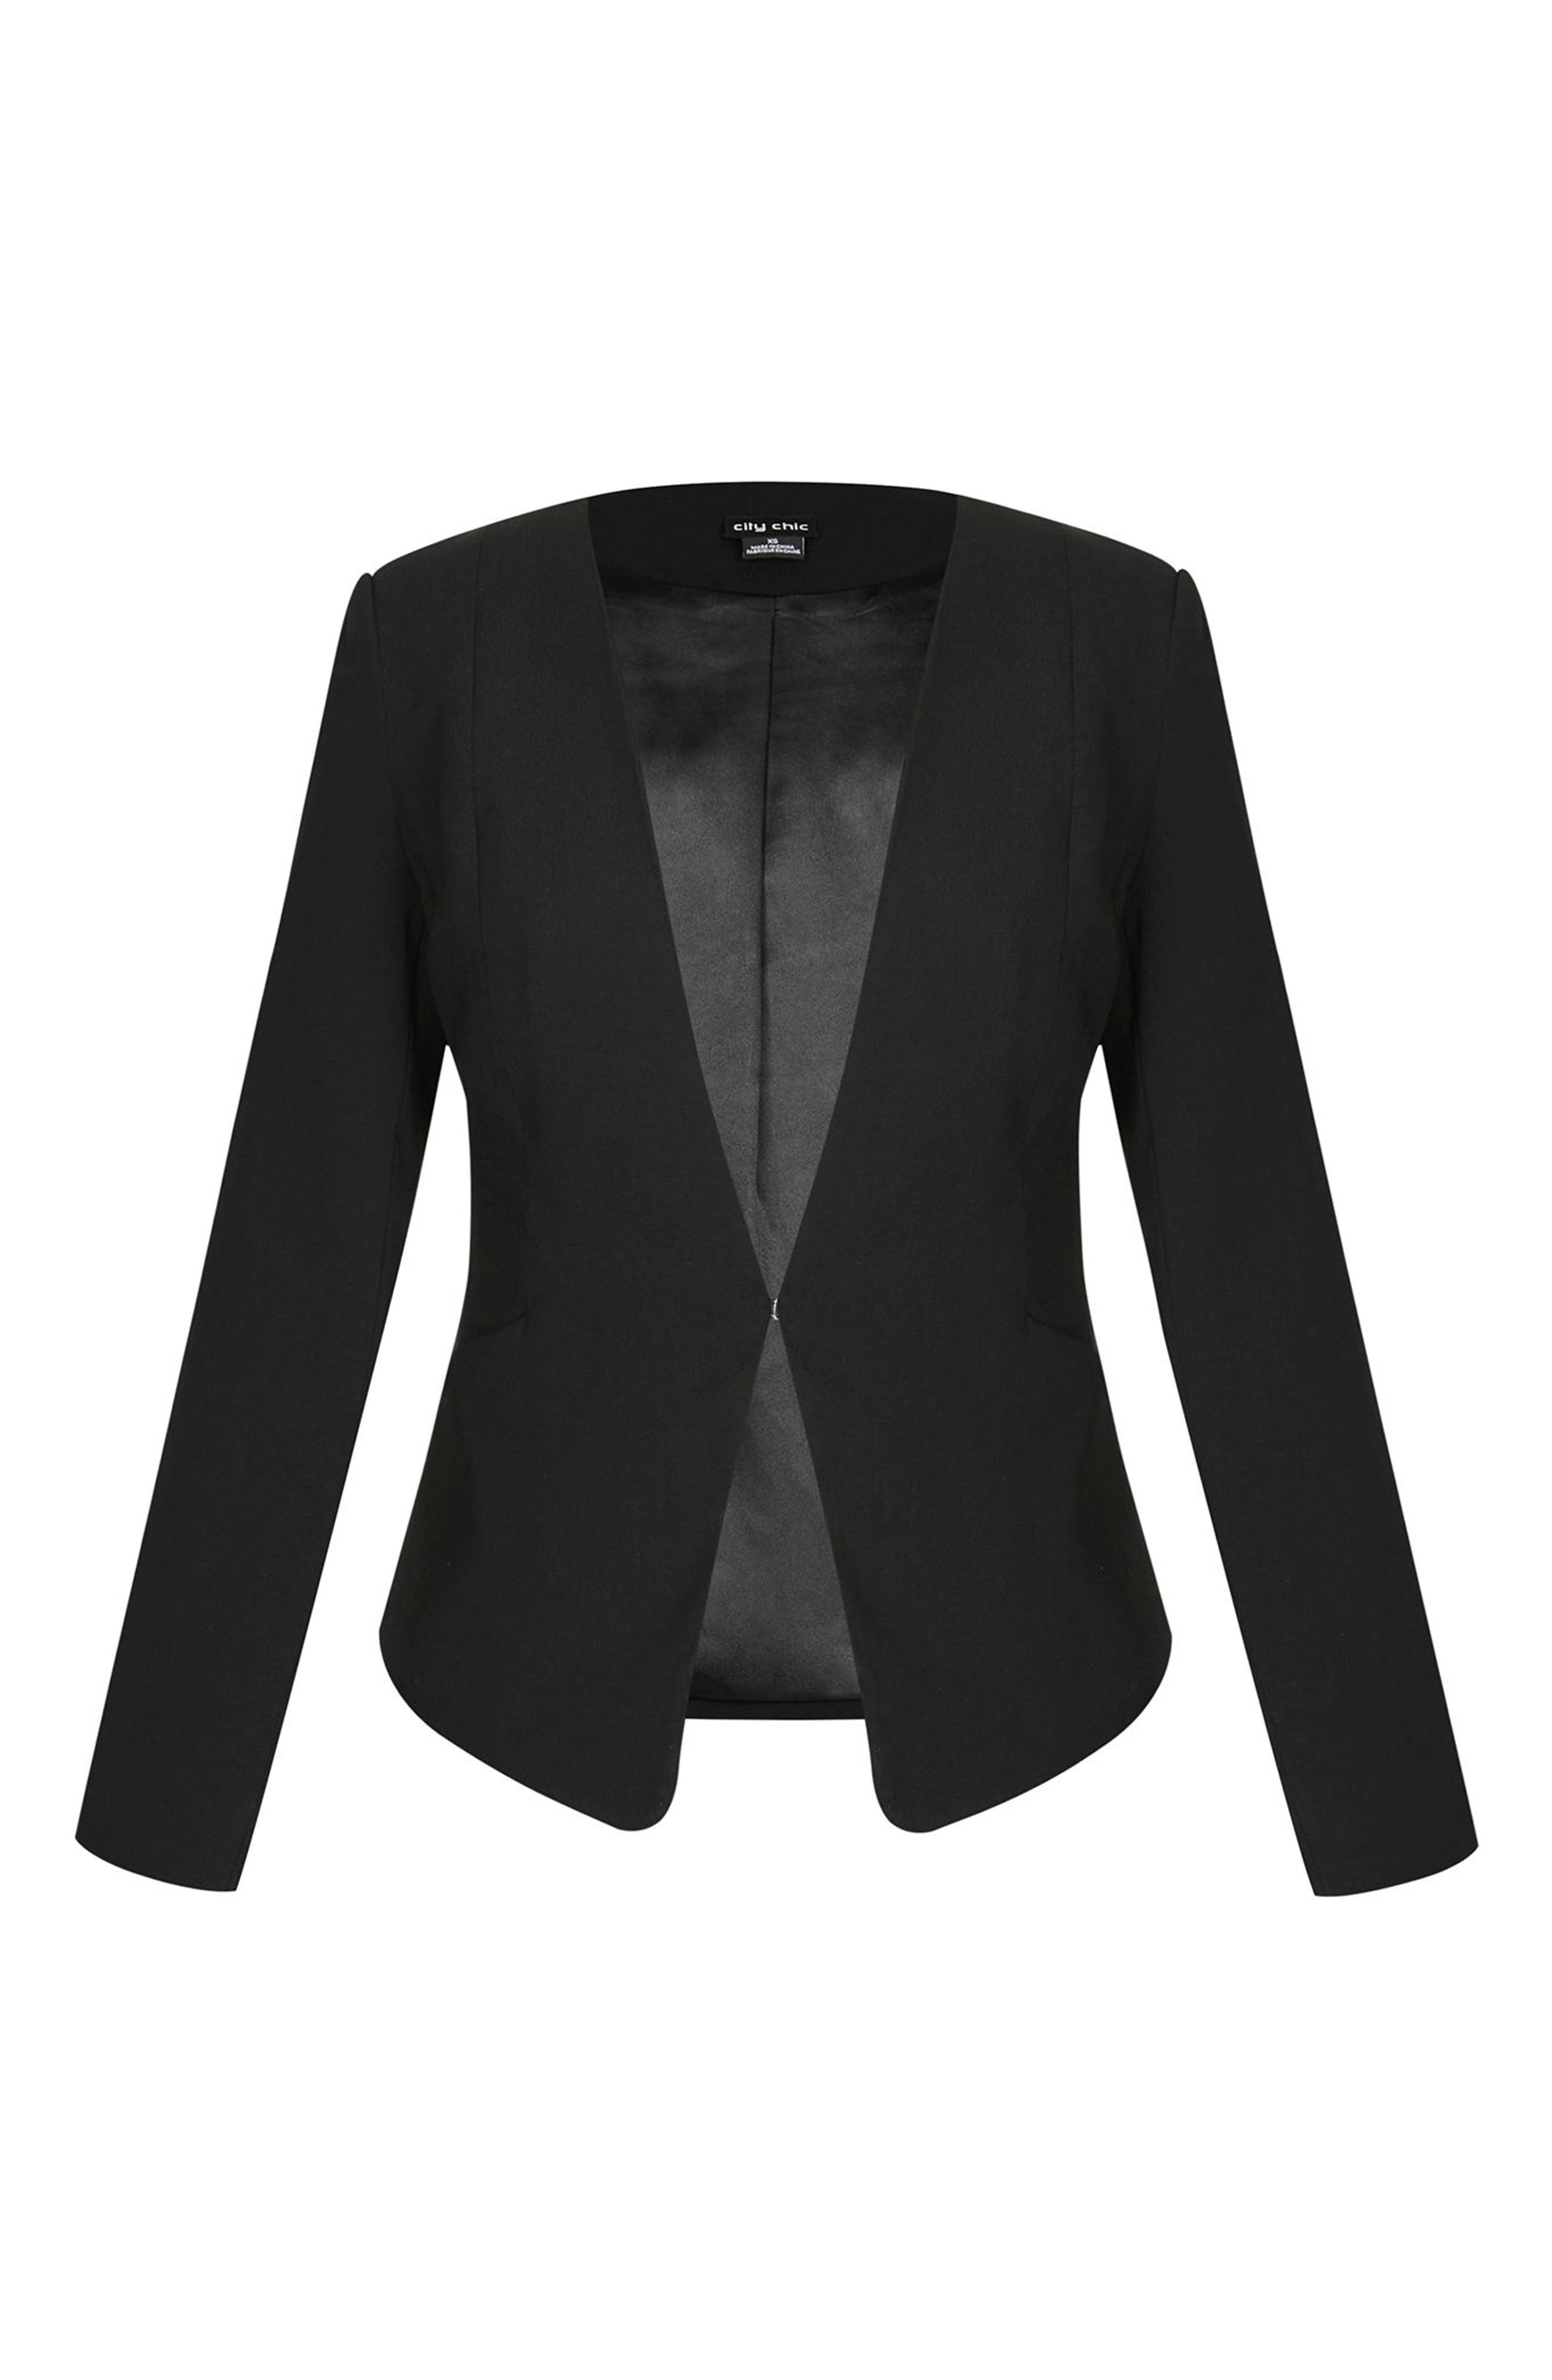 Pirouette Collarless Jacket,                             Alternate thumbnail 3, color,                             Black